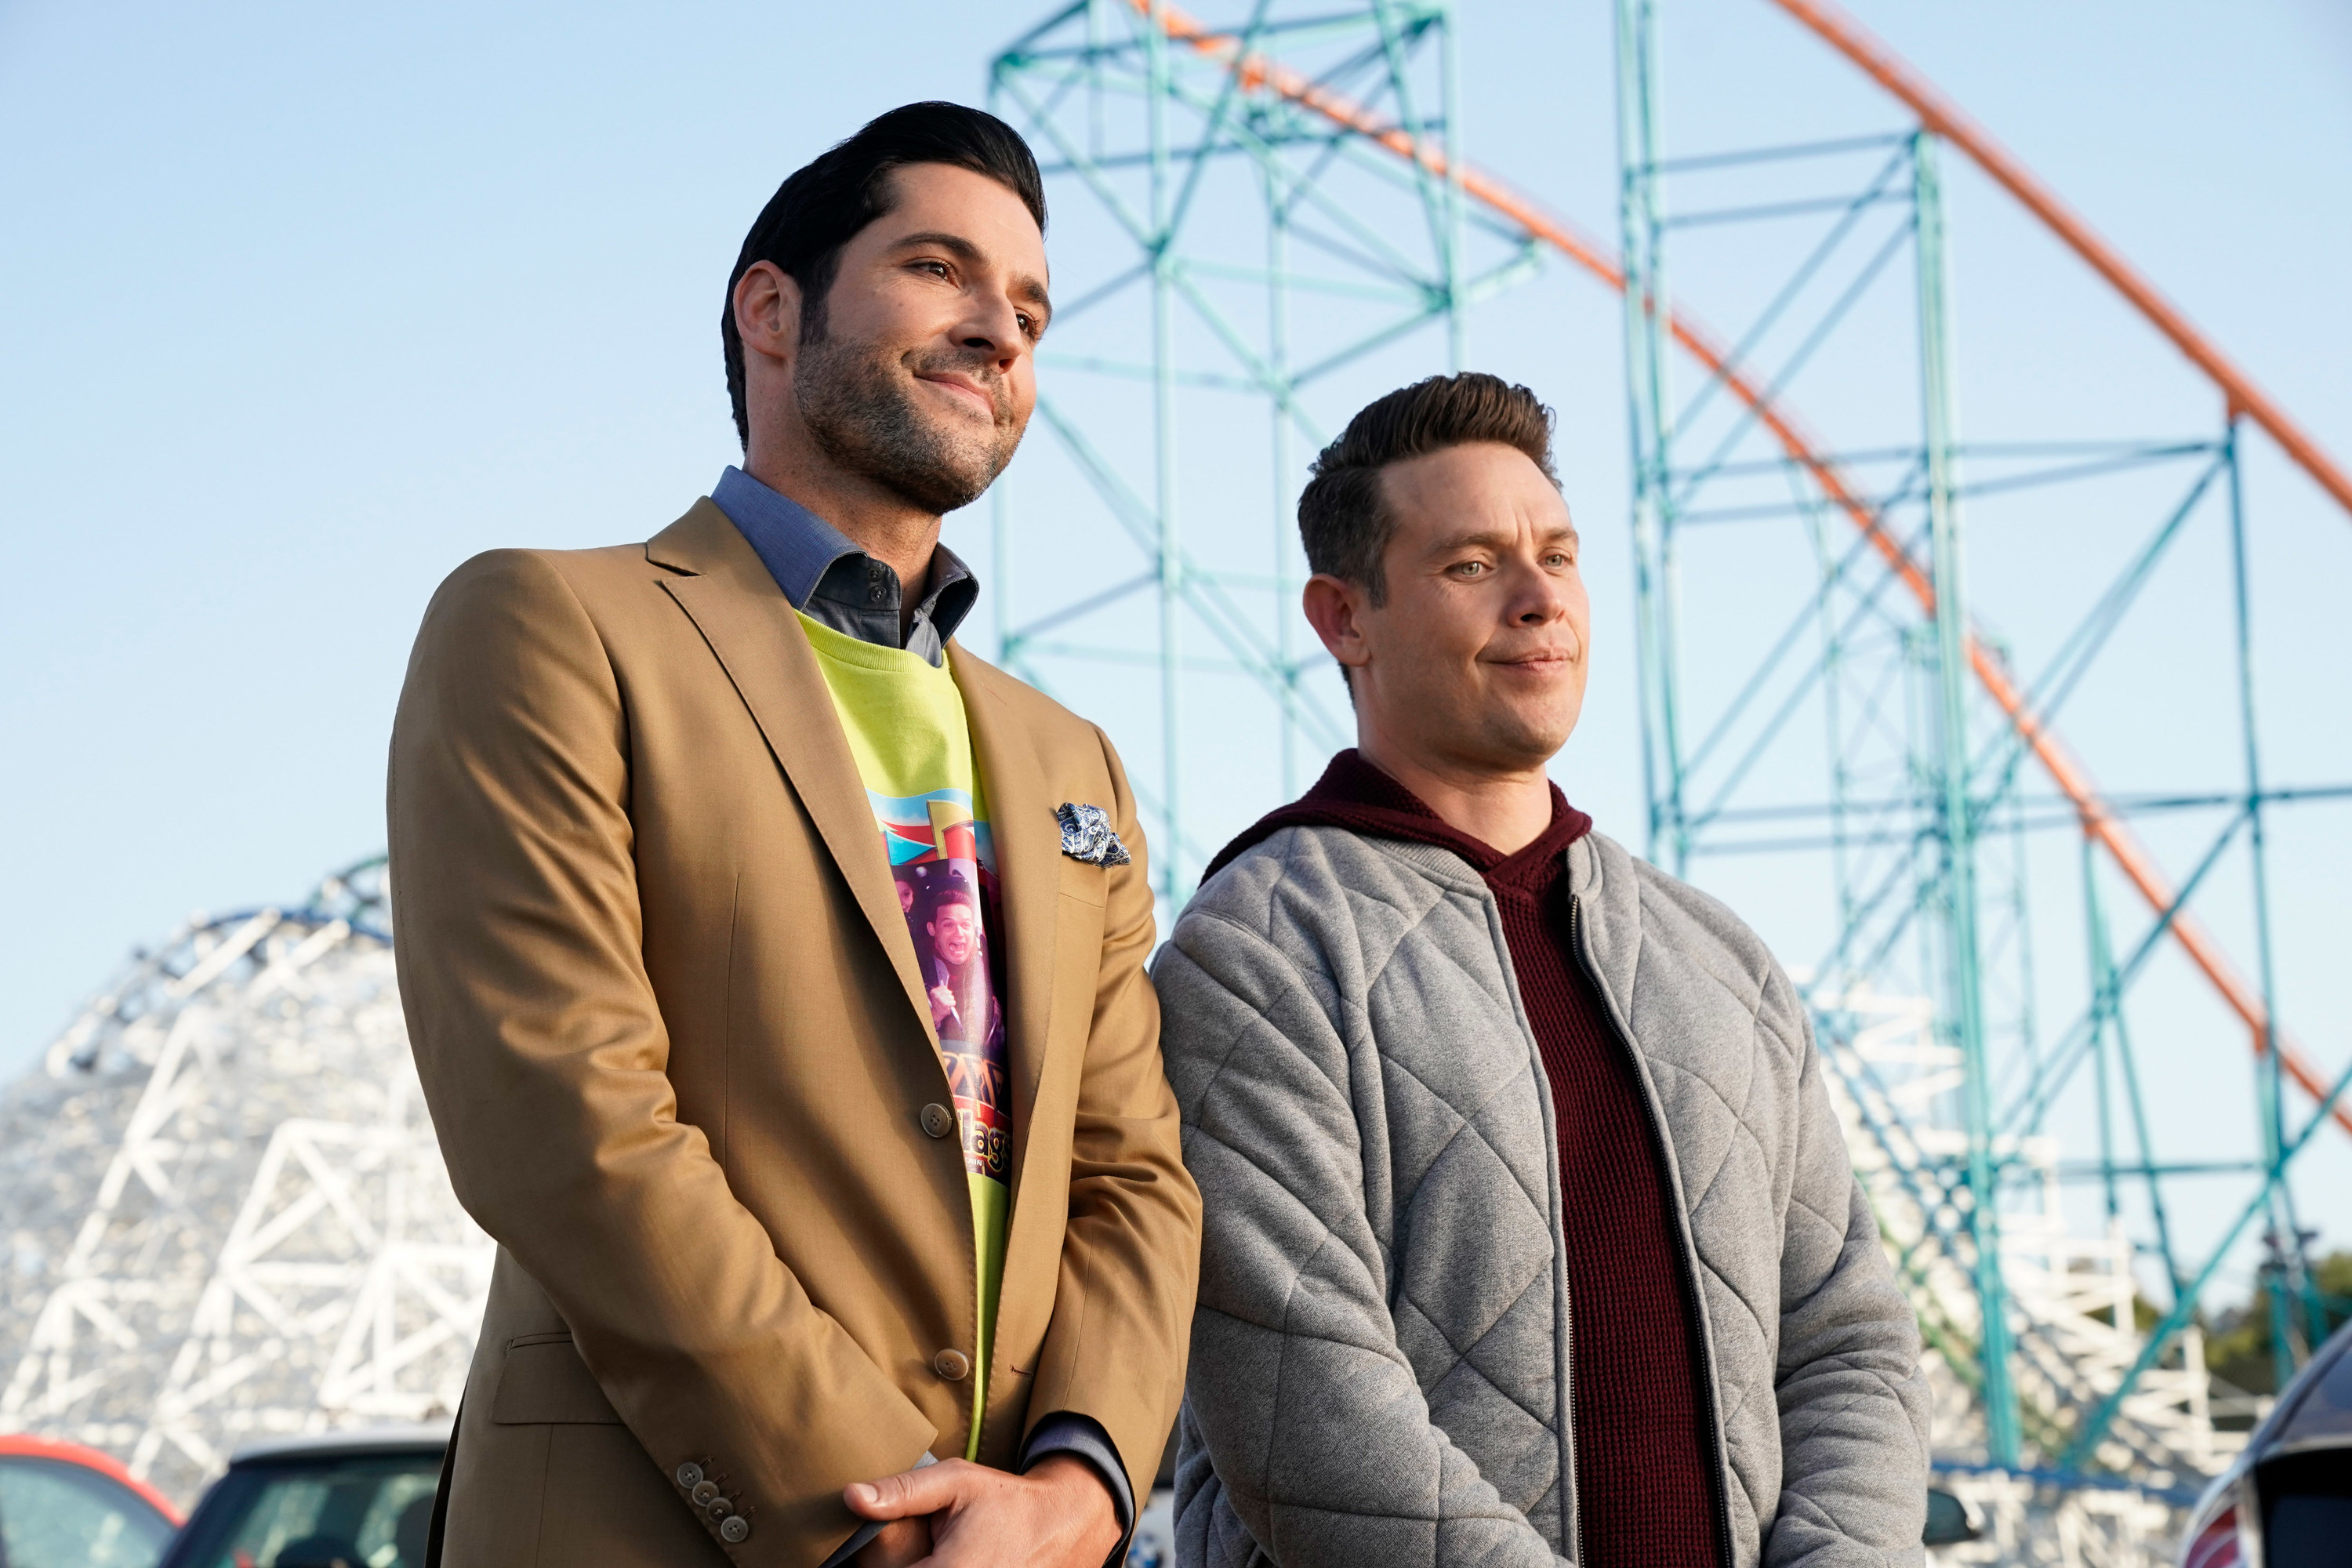 Tom and Kevin standing next to one another at an amusement park